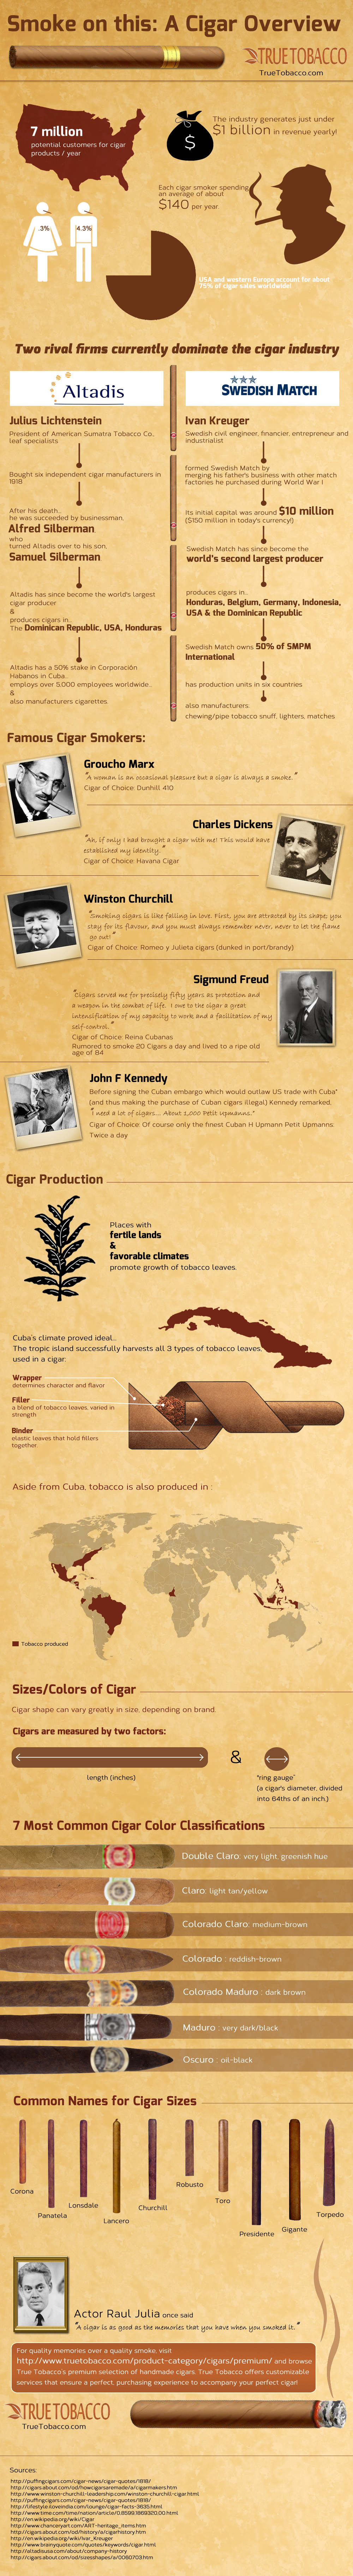 Smoke On This: A Cigar Overview